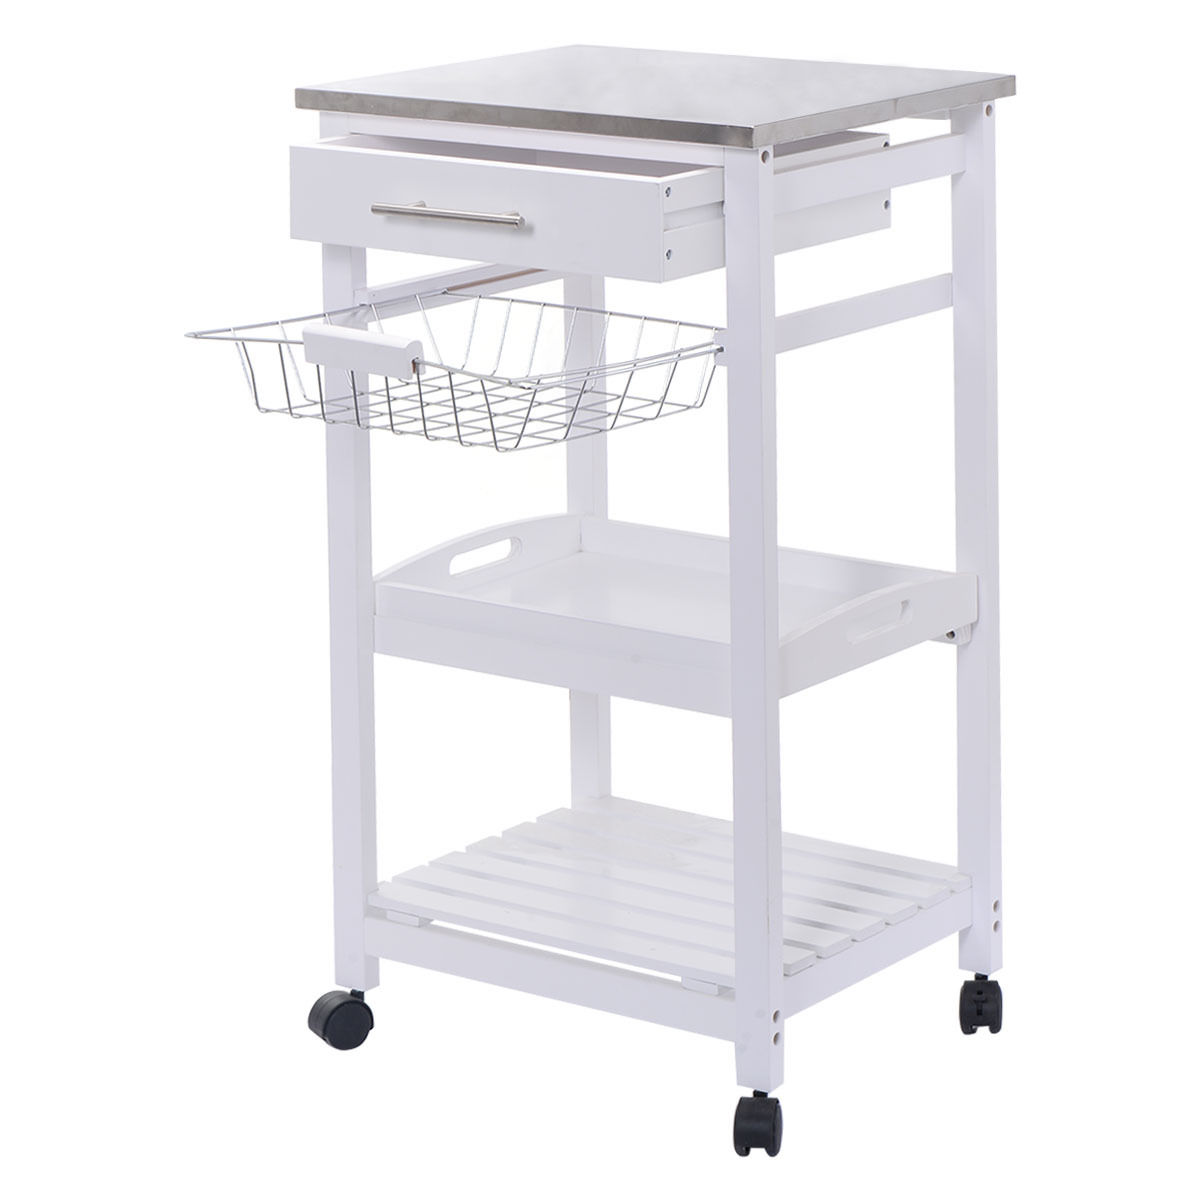 Costway Rolling Kitchen Trolley Cart Steel Top Removable Tray W/Storage Basket &Drawers by Costway